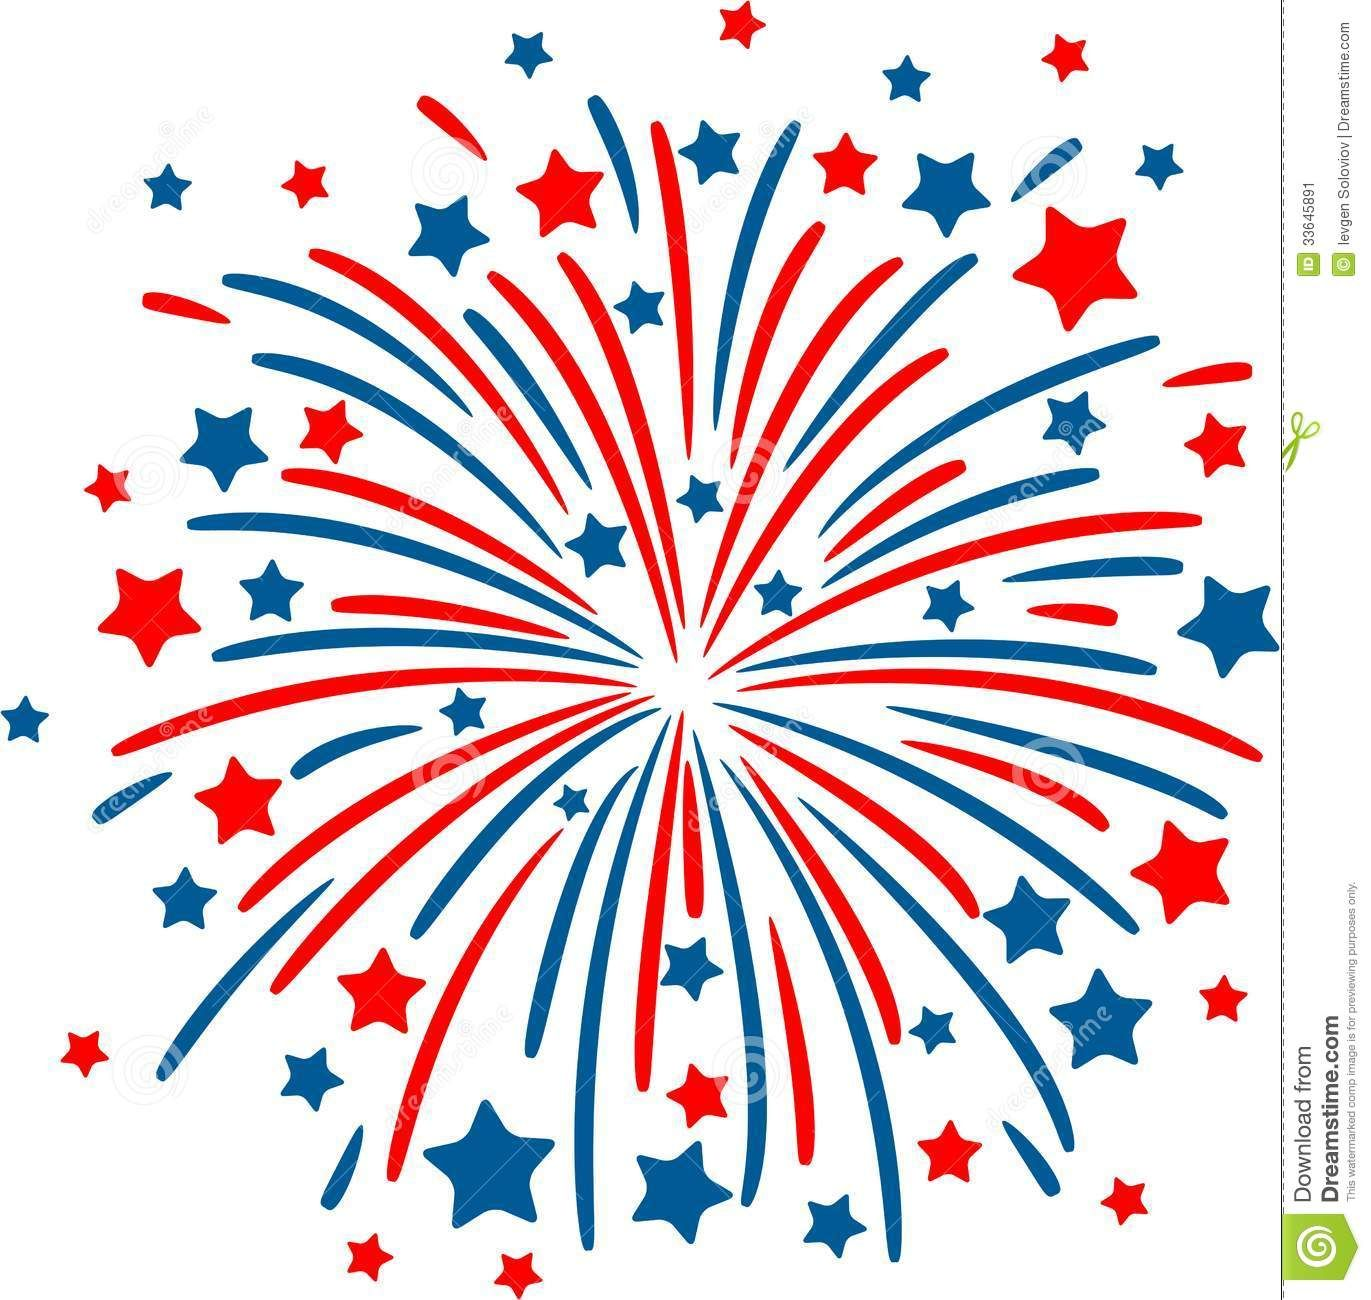 fireworks clipart no background clipart panda free clipart rh pinterest com fireworks clipart animated fireworks clipart animated free